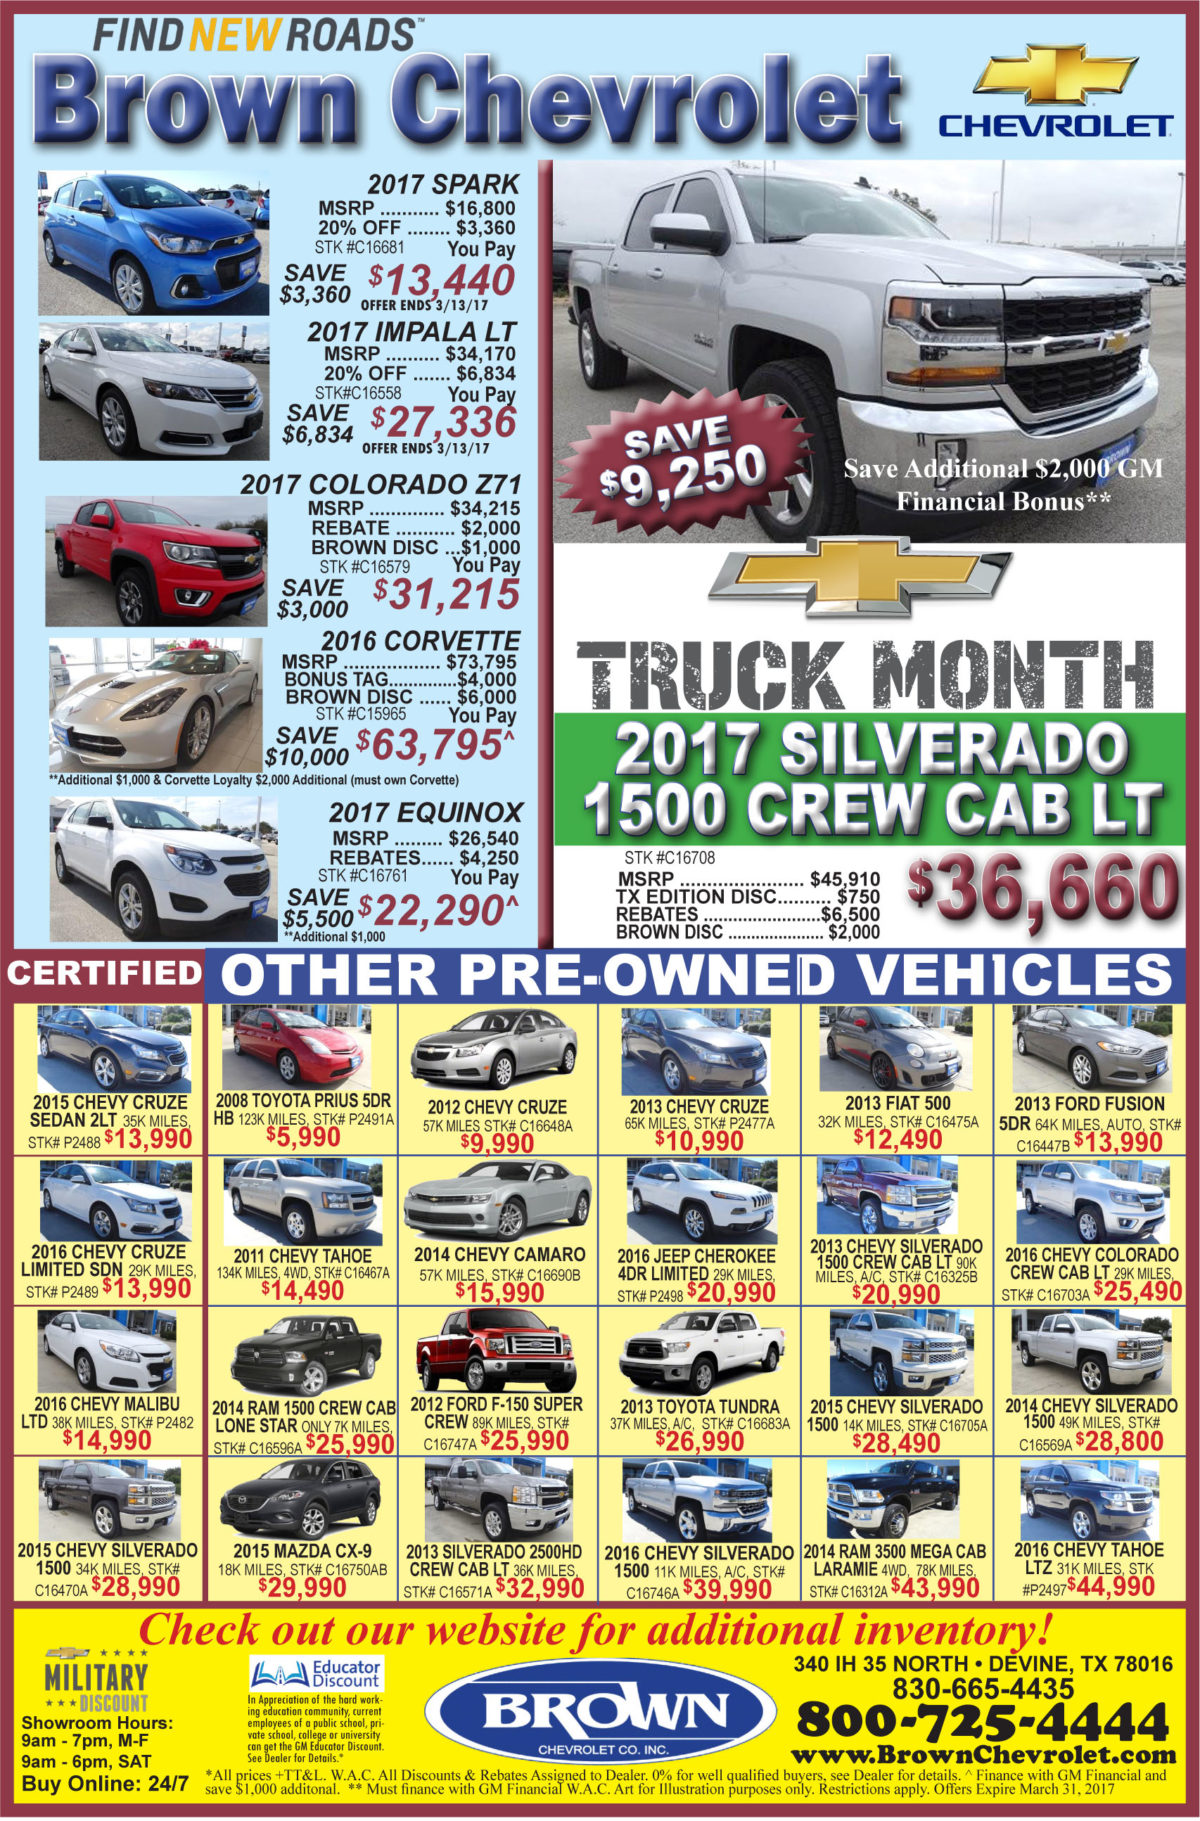 Brown Chevrolet weekly deals